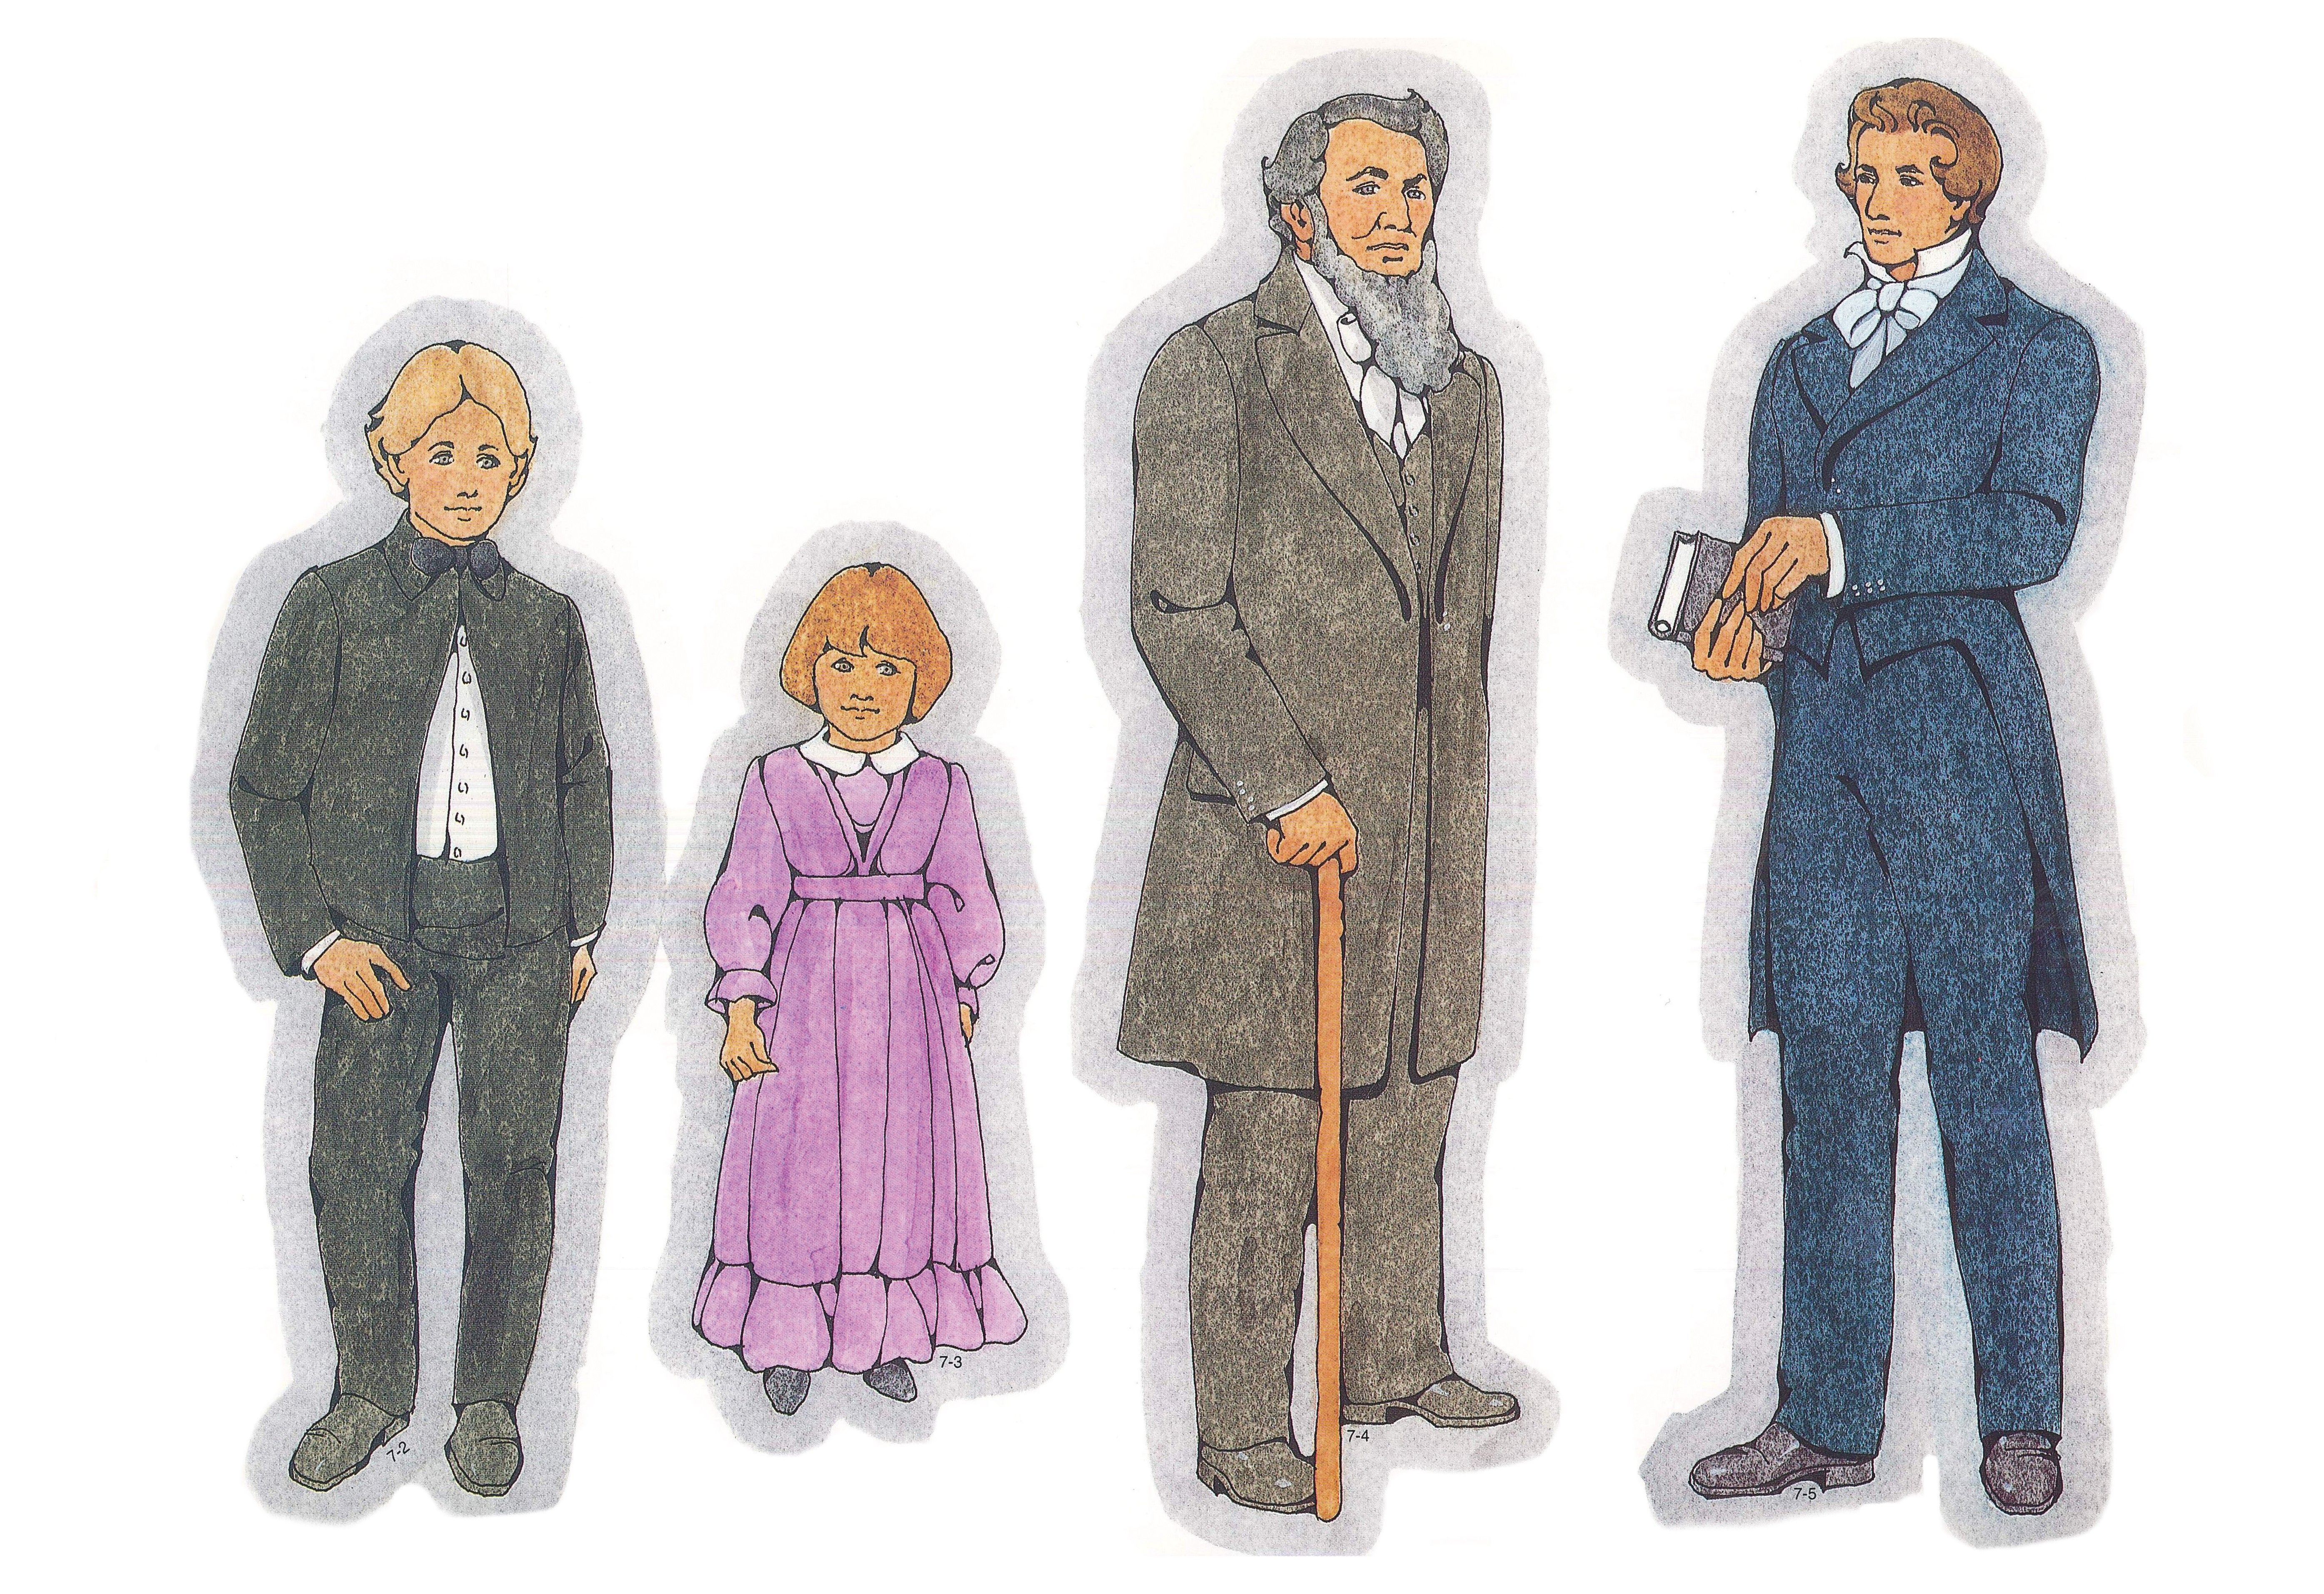 Primary Visual Aids: Cutouts 7-2, Young Pioneer Boy; 7-3, Young Pioneer Girl; 7-4, Brigham Young; 7-5, Joseph Smith.